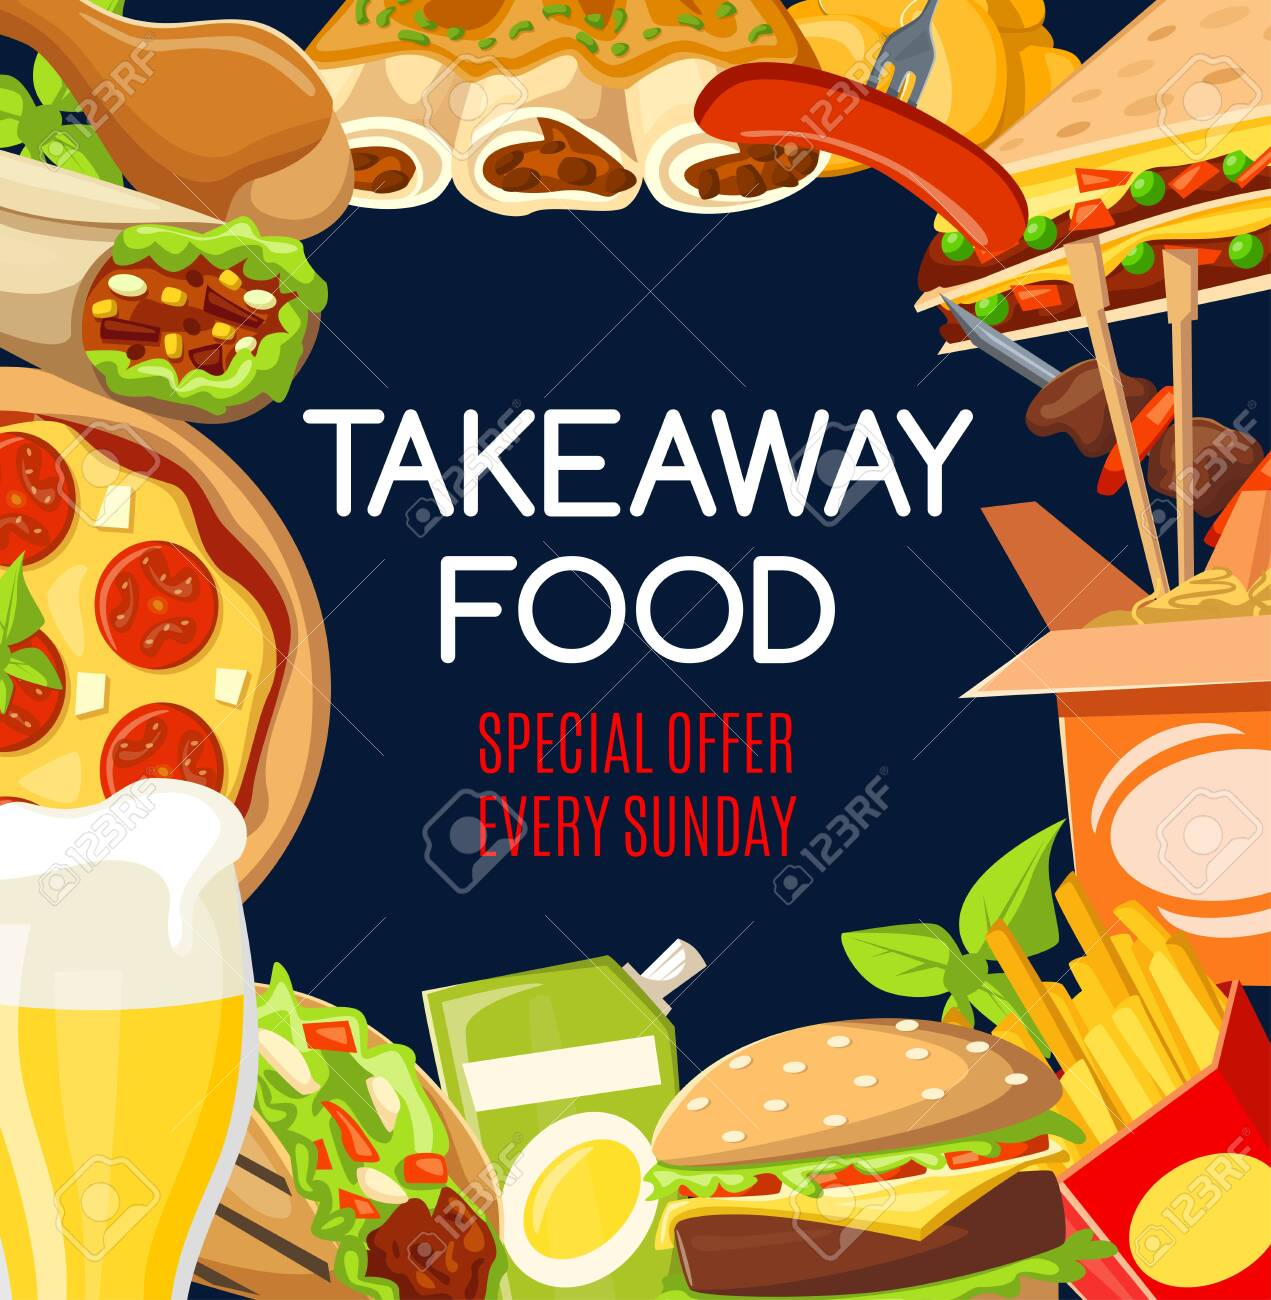 Fast food menu cover of takeaway snacks and drinks special offer. Vector fastfood restaurant or cafe burgers, pizza or Mexican burrito and Asian noodles with chicken grill legs and kebab - 124256210